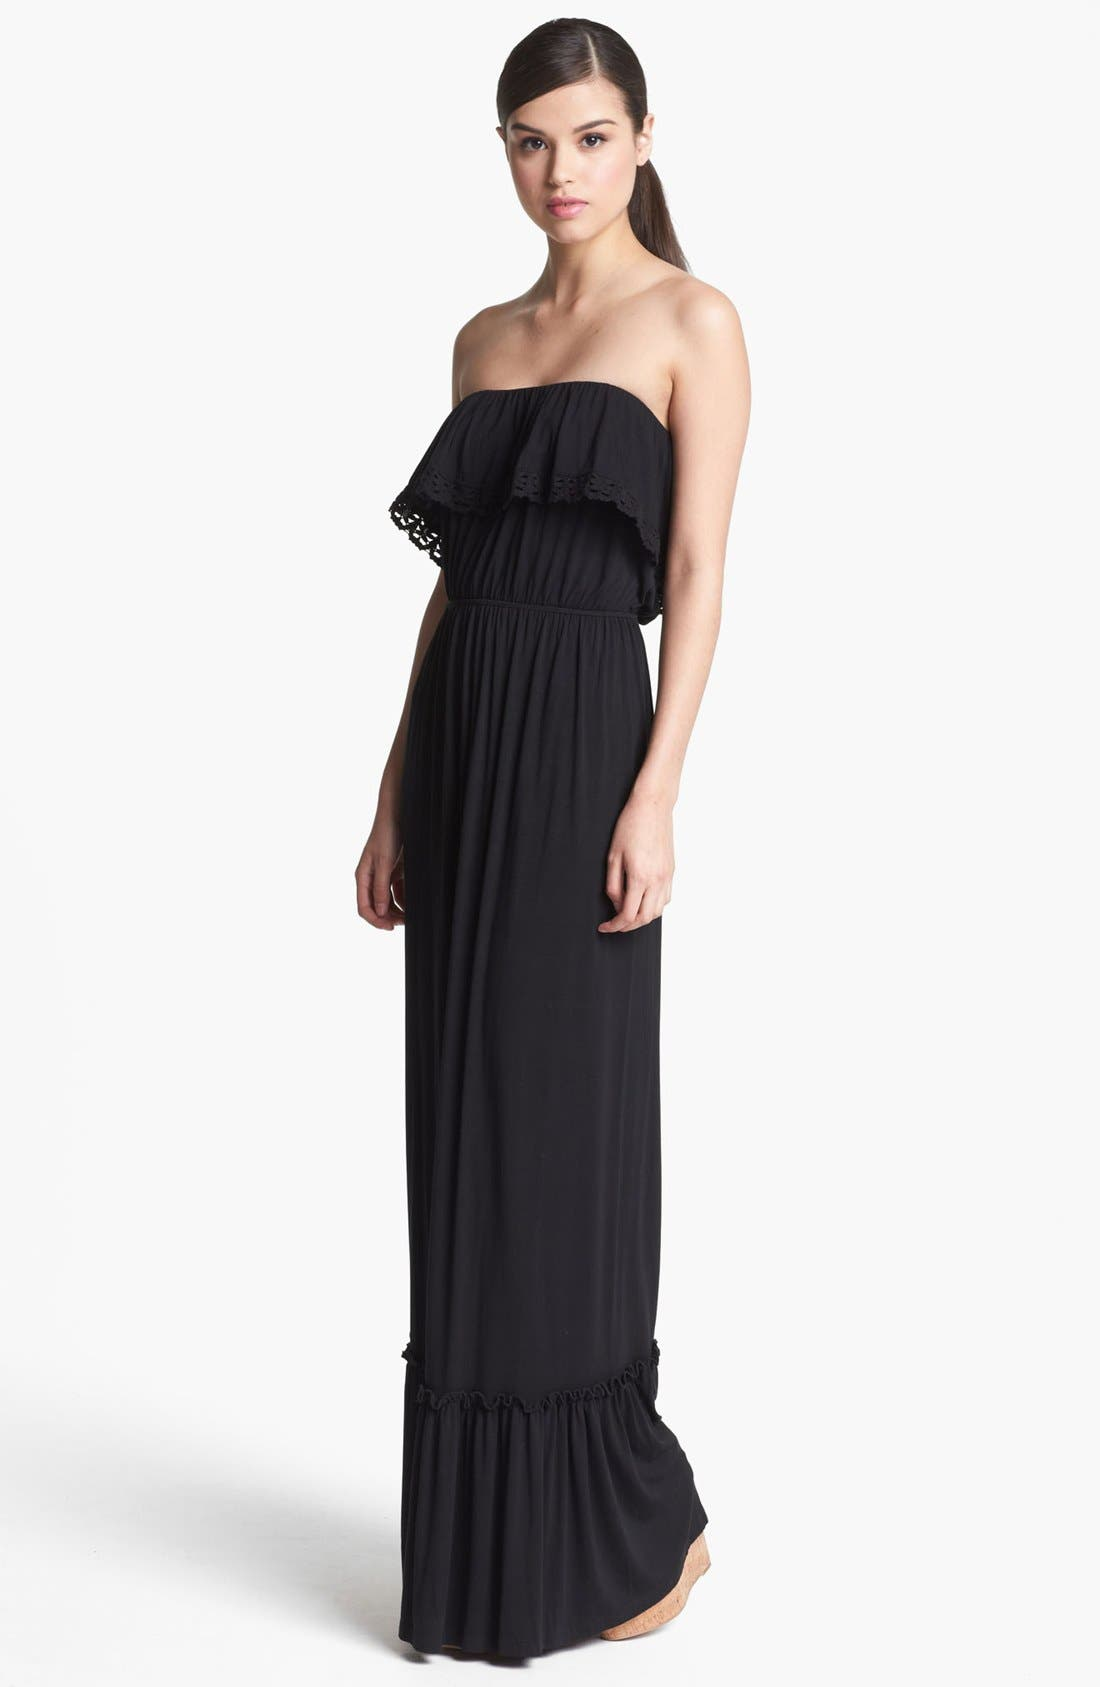 Ruffled Strapless Maxi Dress,                         Main,                         color, 001